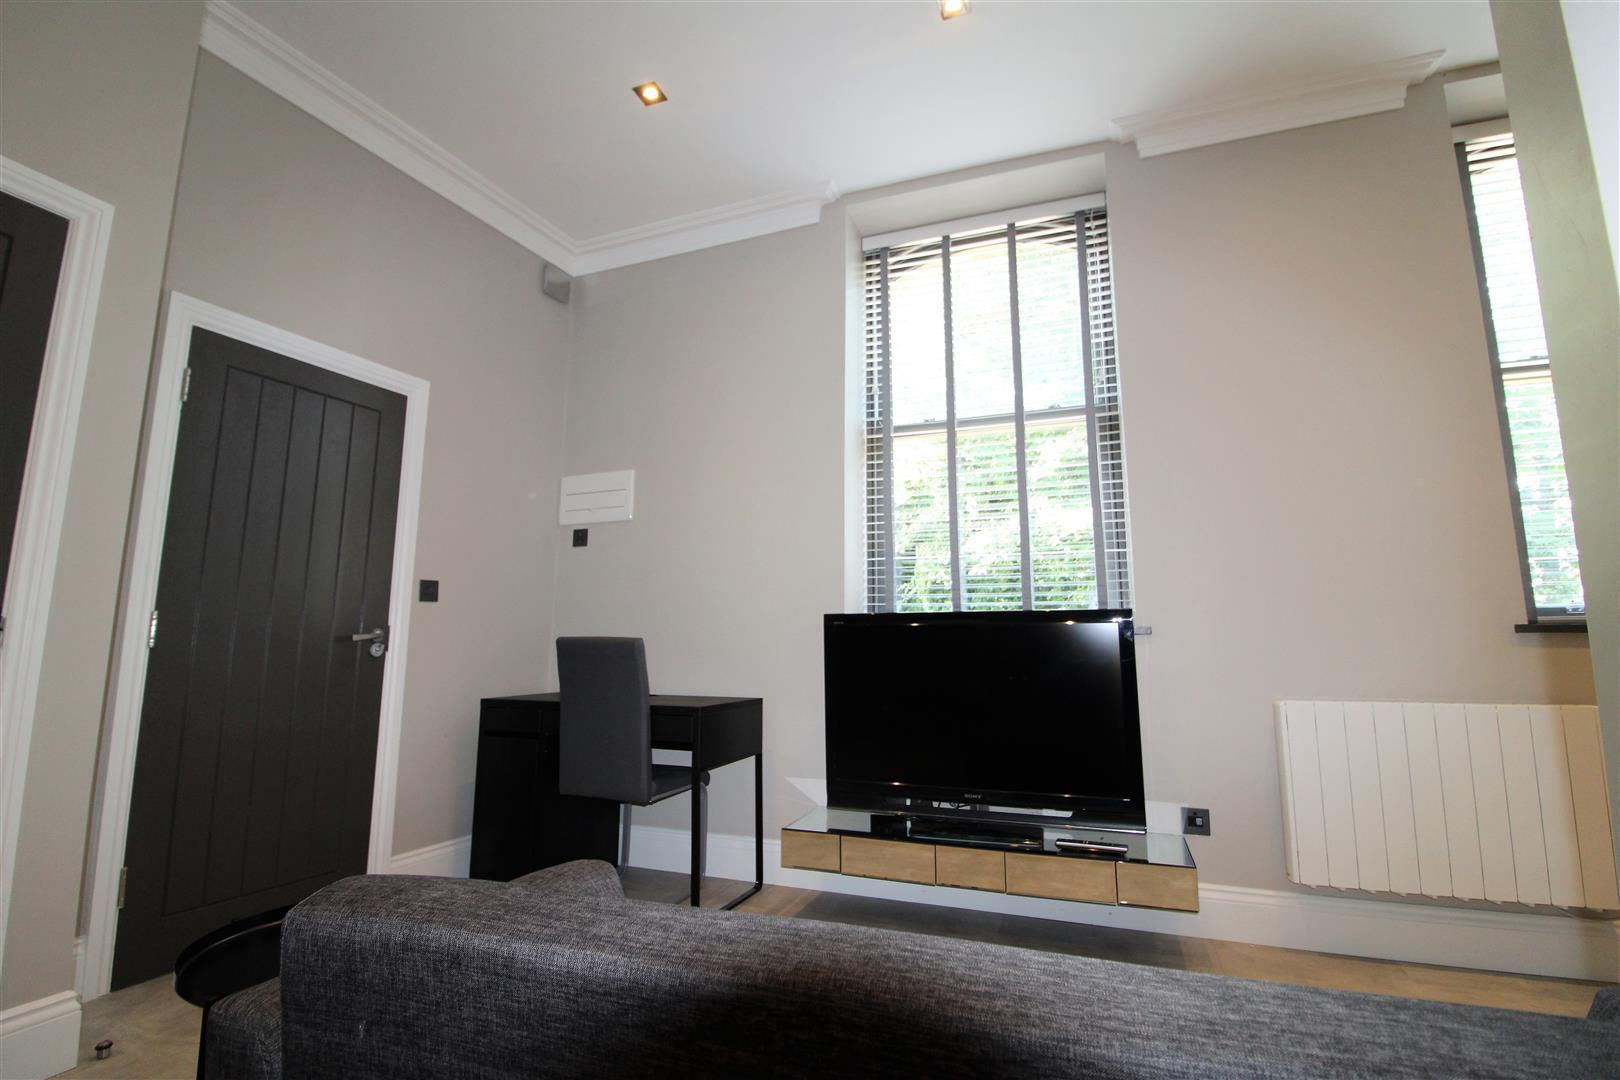 Studio 7 Moorlands Heights, Quarry Road, Lancaster, LA1 3BY